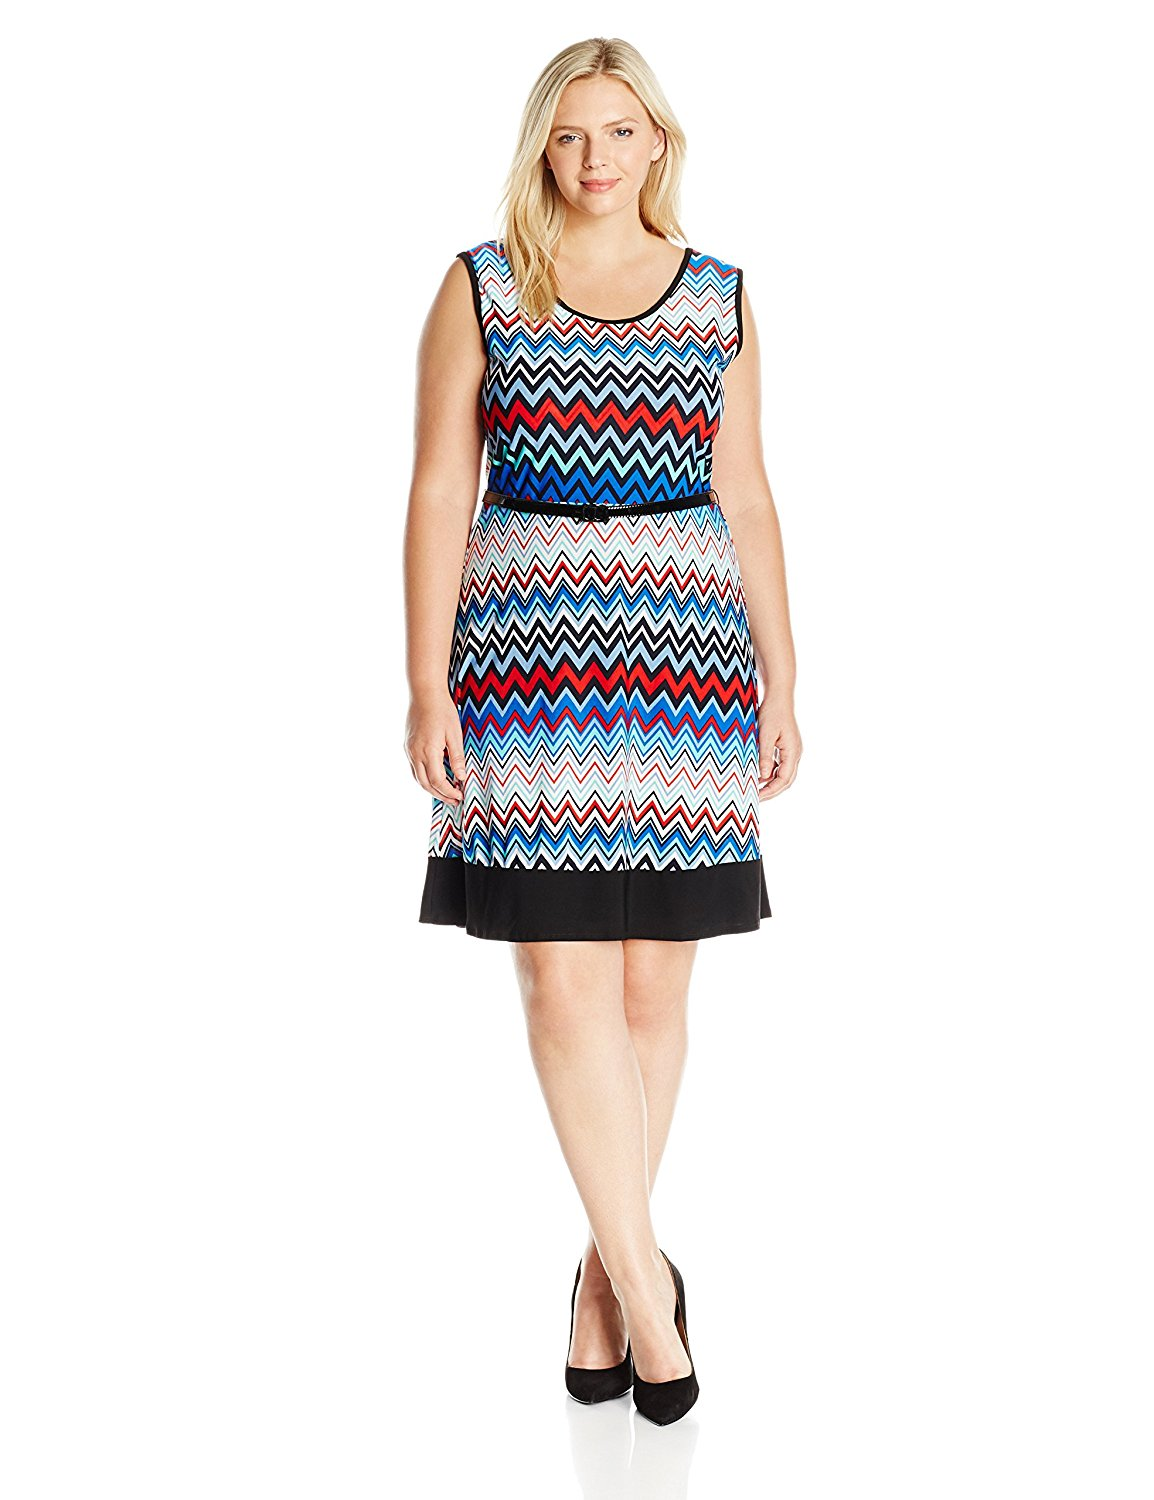 f421a0fd011c Get Quotations · Star Vixen Women's Plus Size Sleeveless Short Ity Knit  Skater Dress with Black Colorblock Hem and